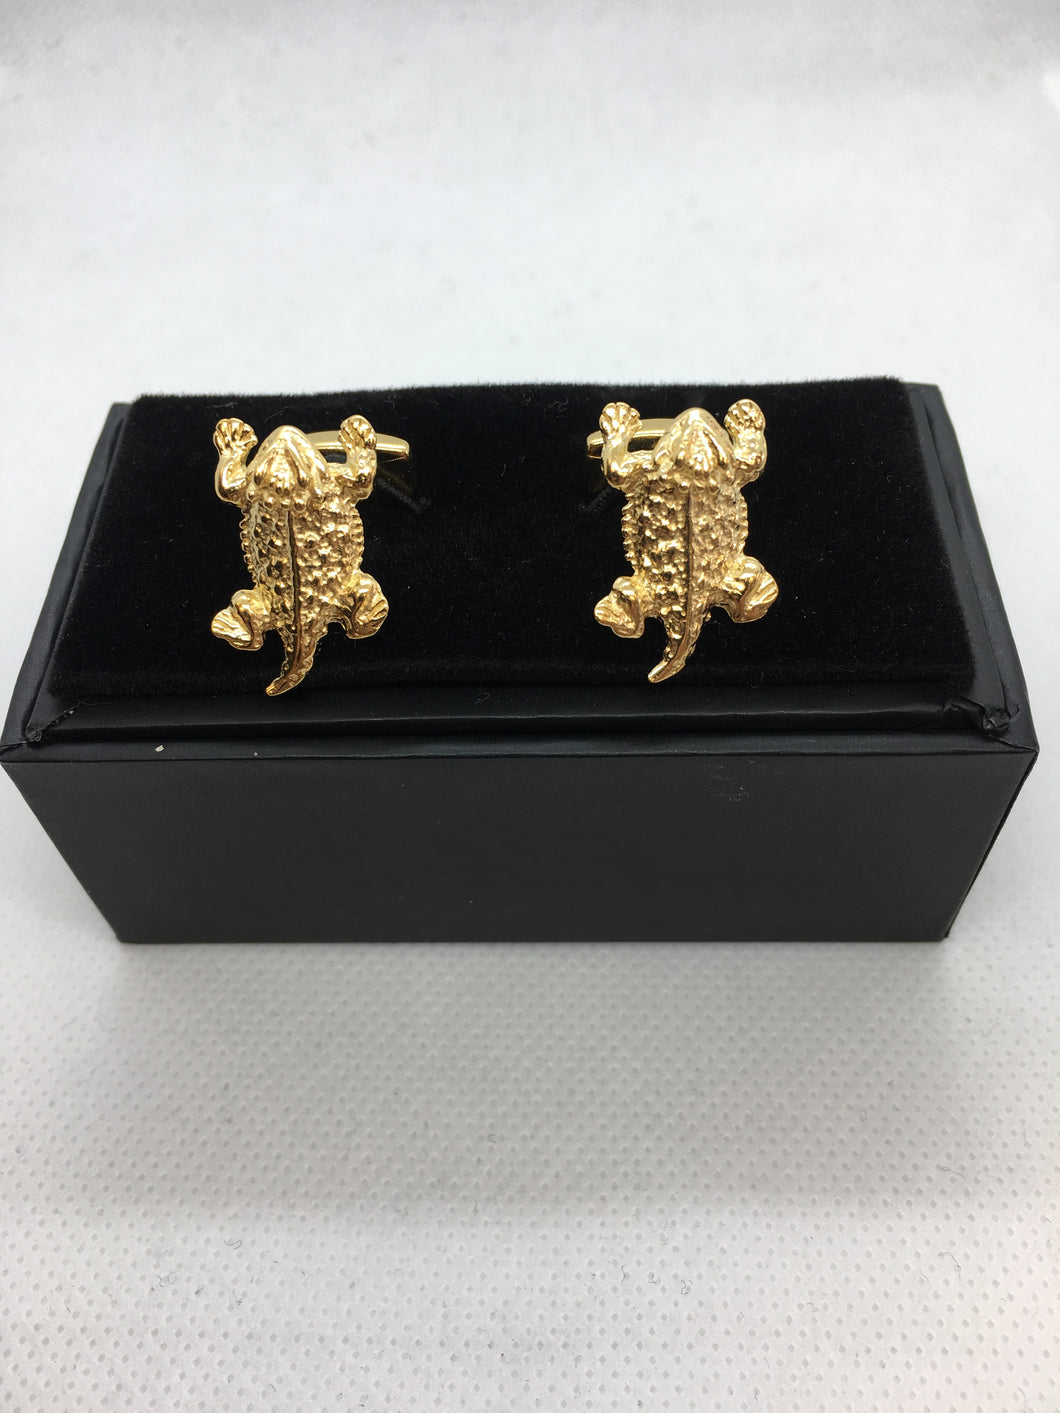 Horned Frog cufflinks gold plated